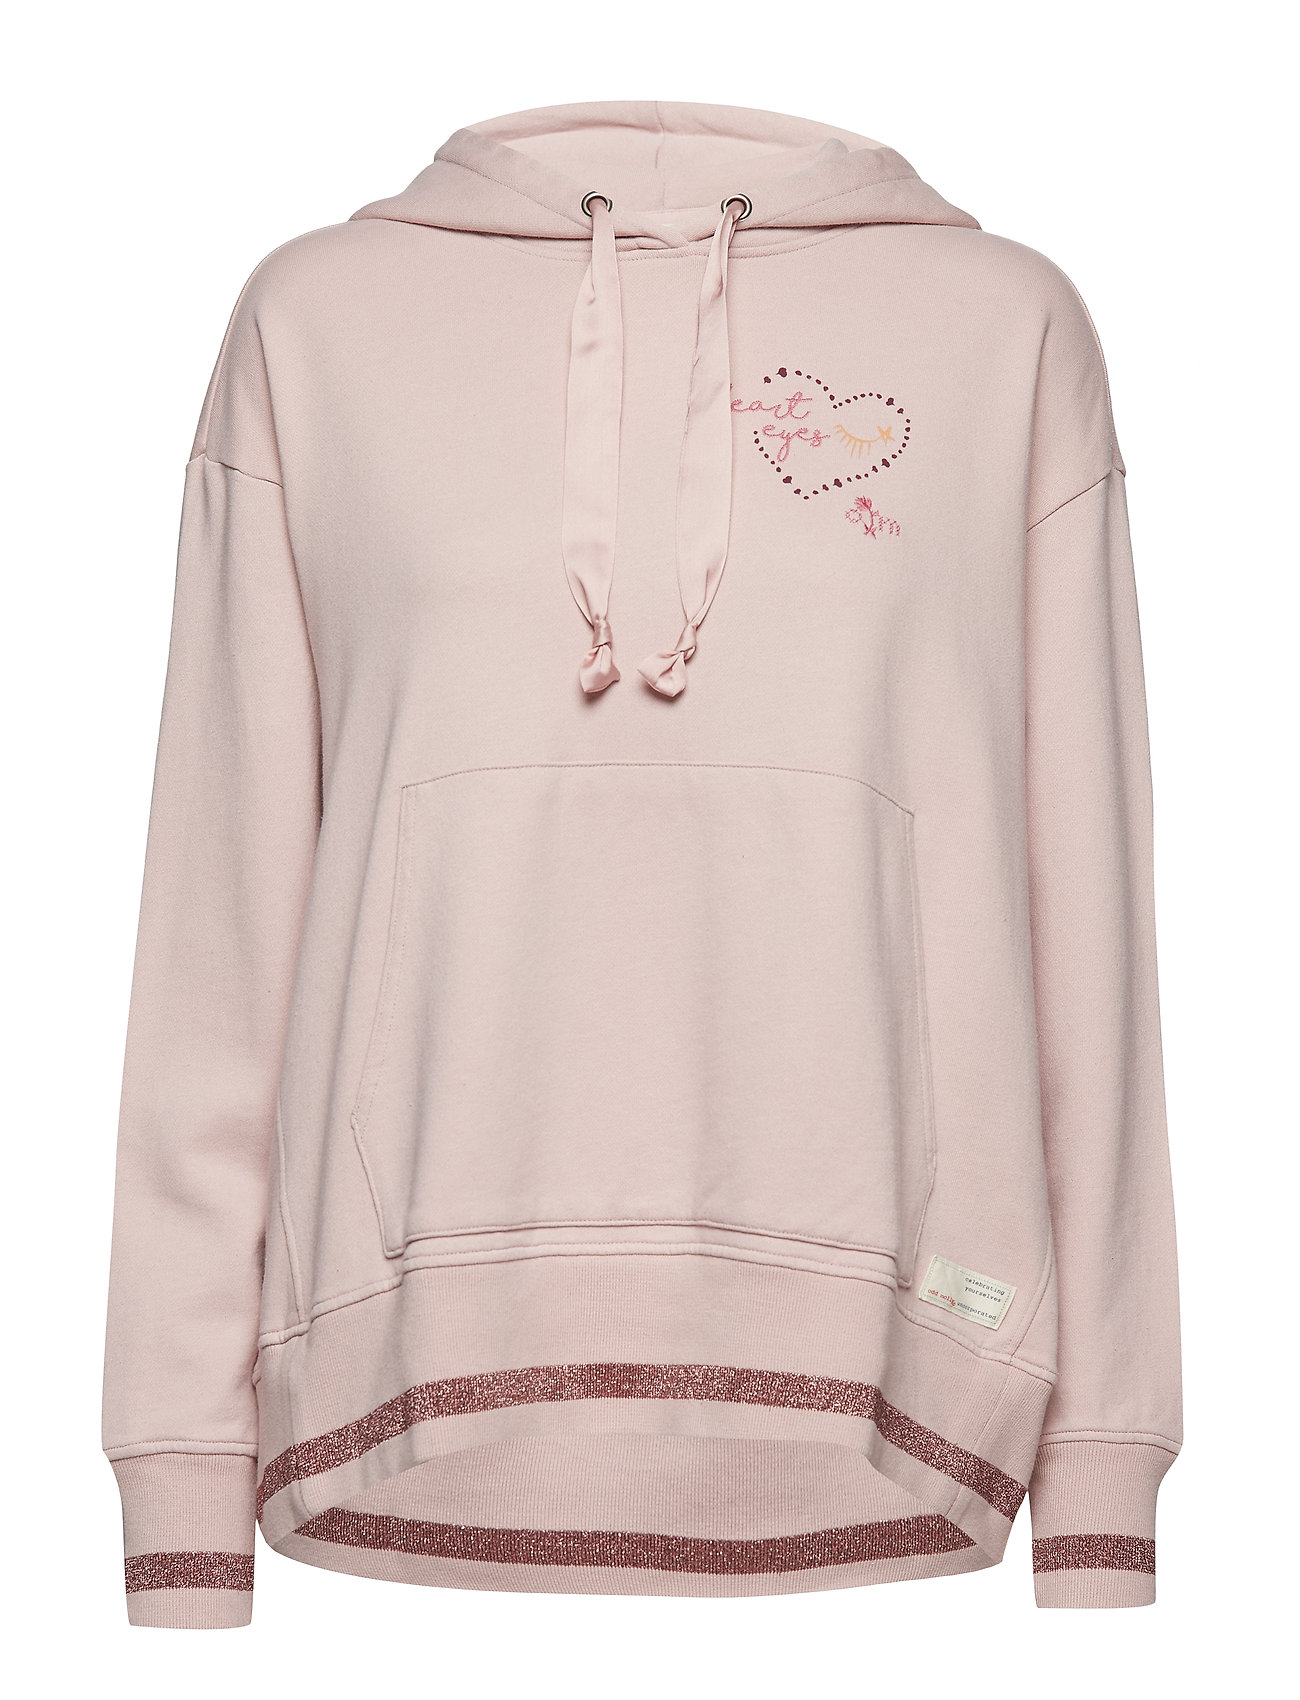 ODD MOLLY dream squad hoodie - SHEER PINK